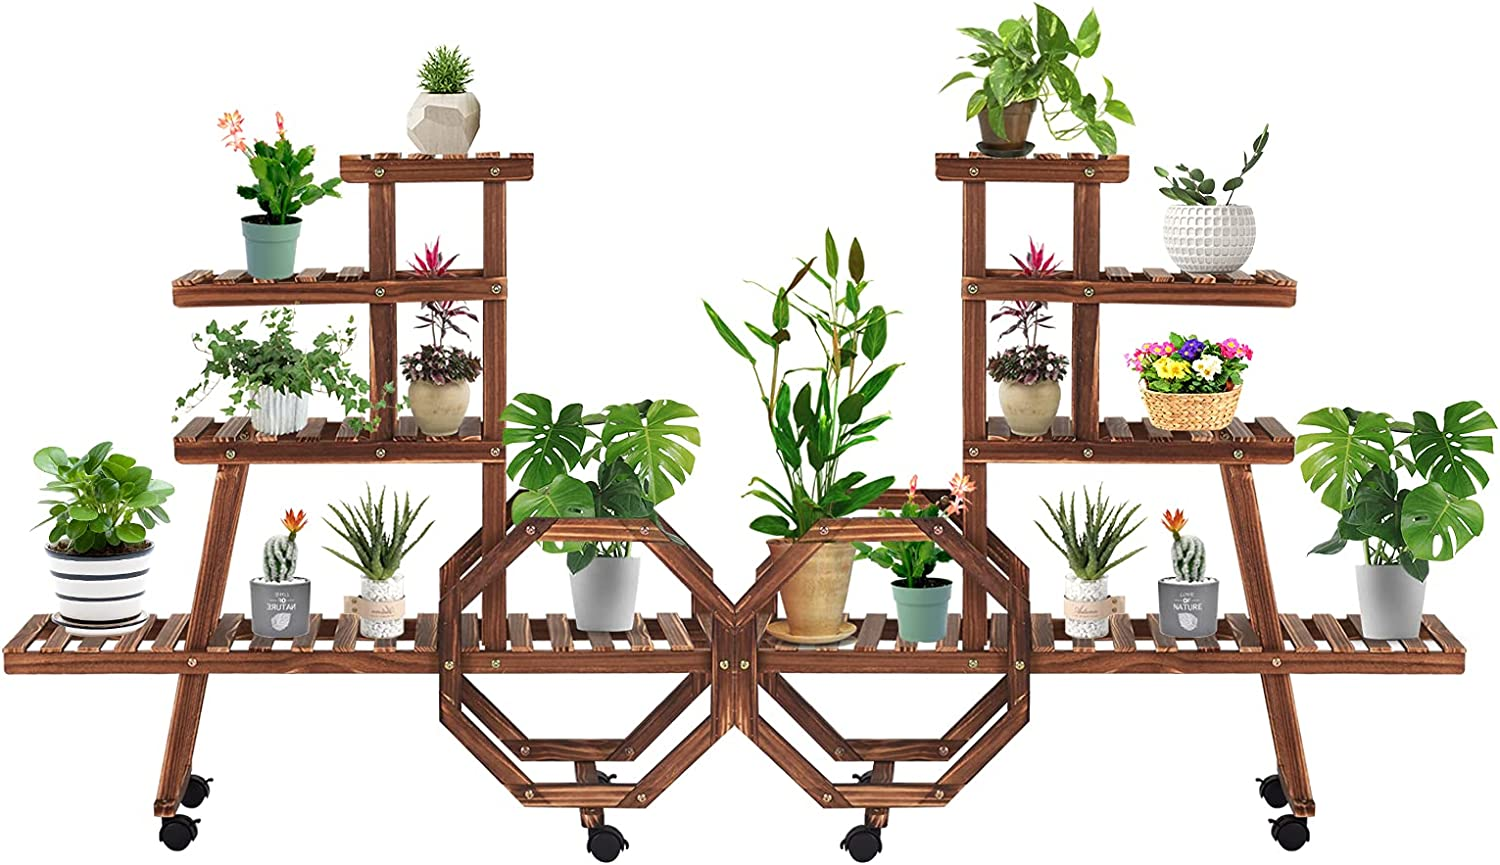 Kinsunny Ranking TOP9 Plant Stand Rack Max 90% OFF with 4 Flowe Tier Rolling Wheels